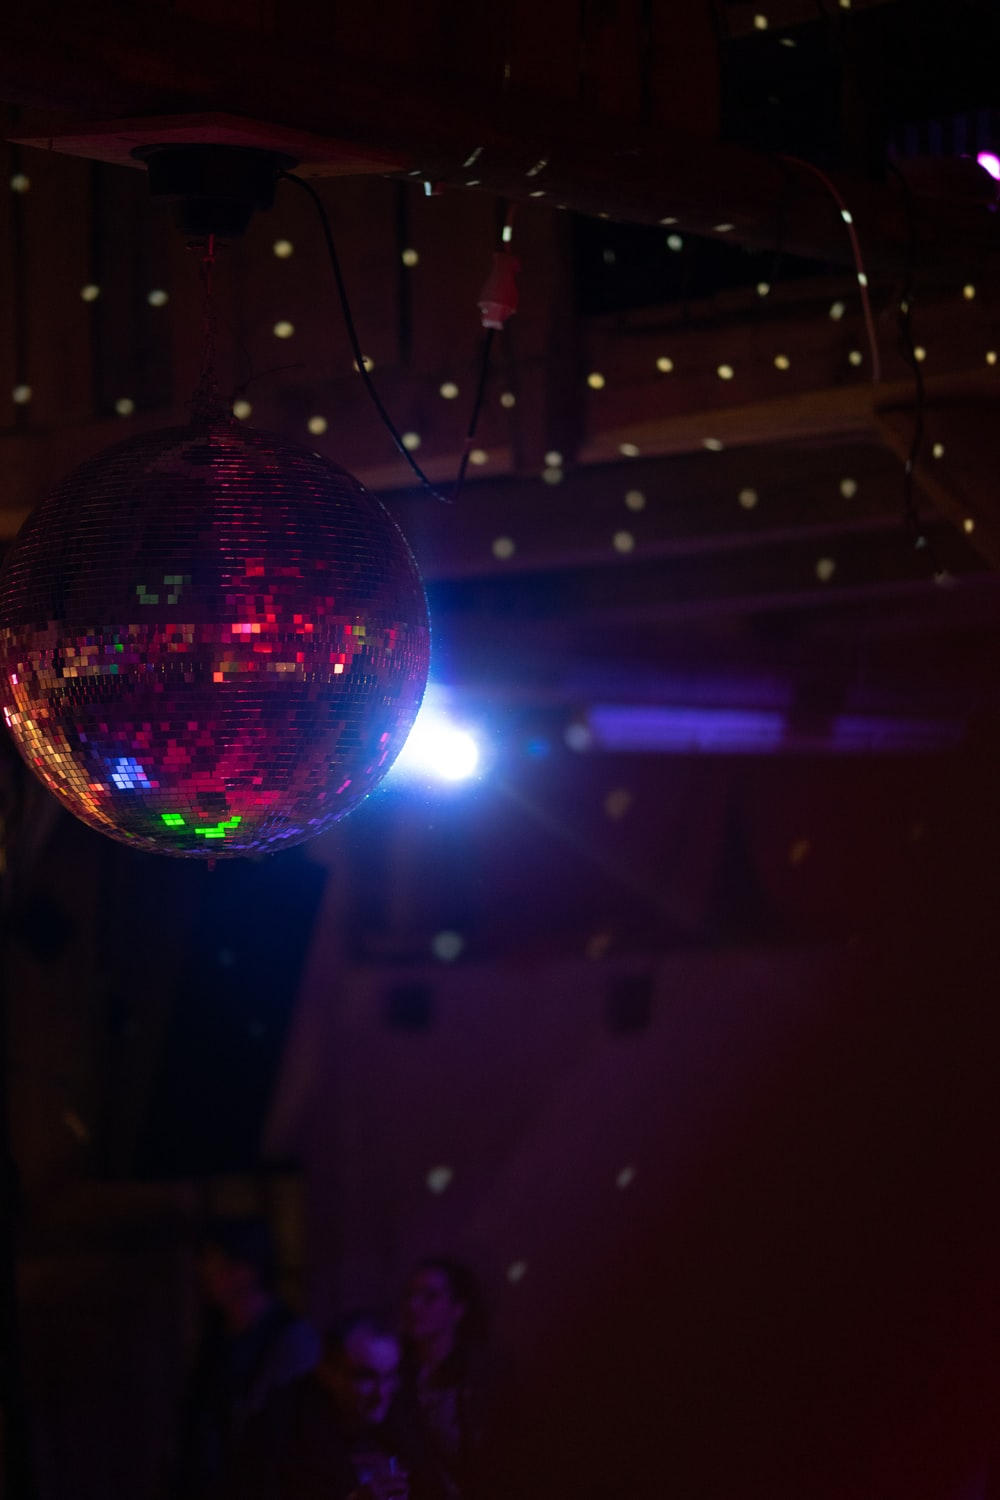 disco ball in room